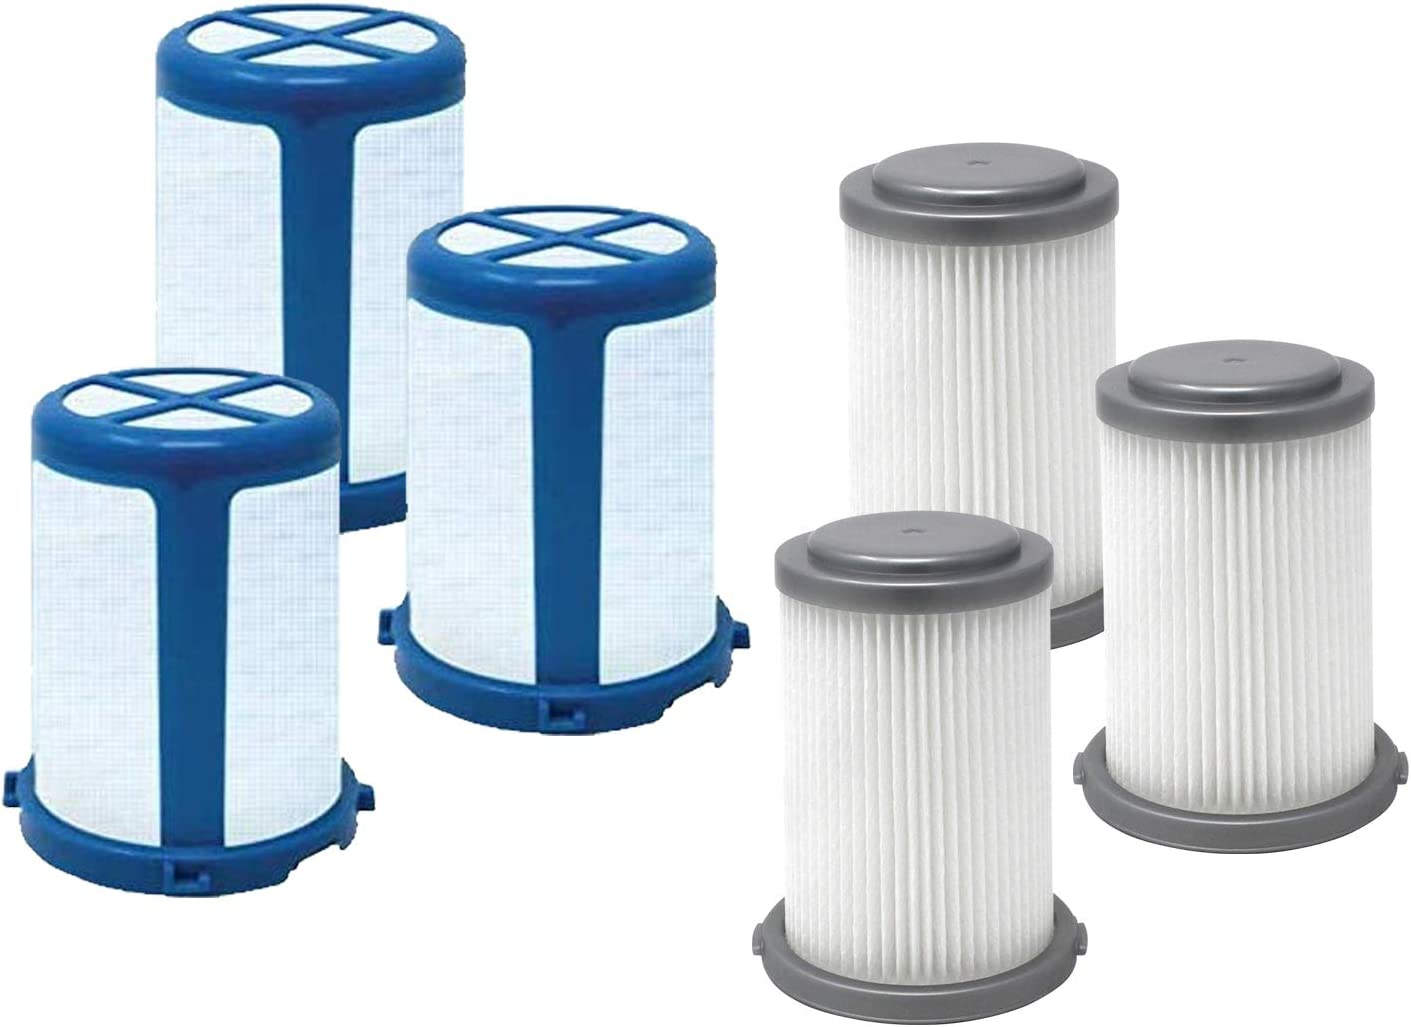 Fette Filter - Vacuum Filters Compatible with Black + Decker Cordless Vacuums HCUA525 Series Compare to Part # CUAHF10 3-Pack + 3 mesh Screens